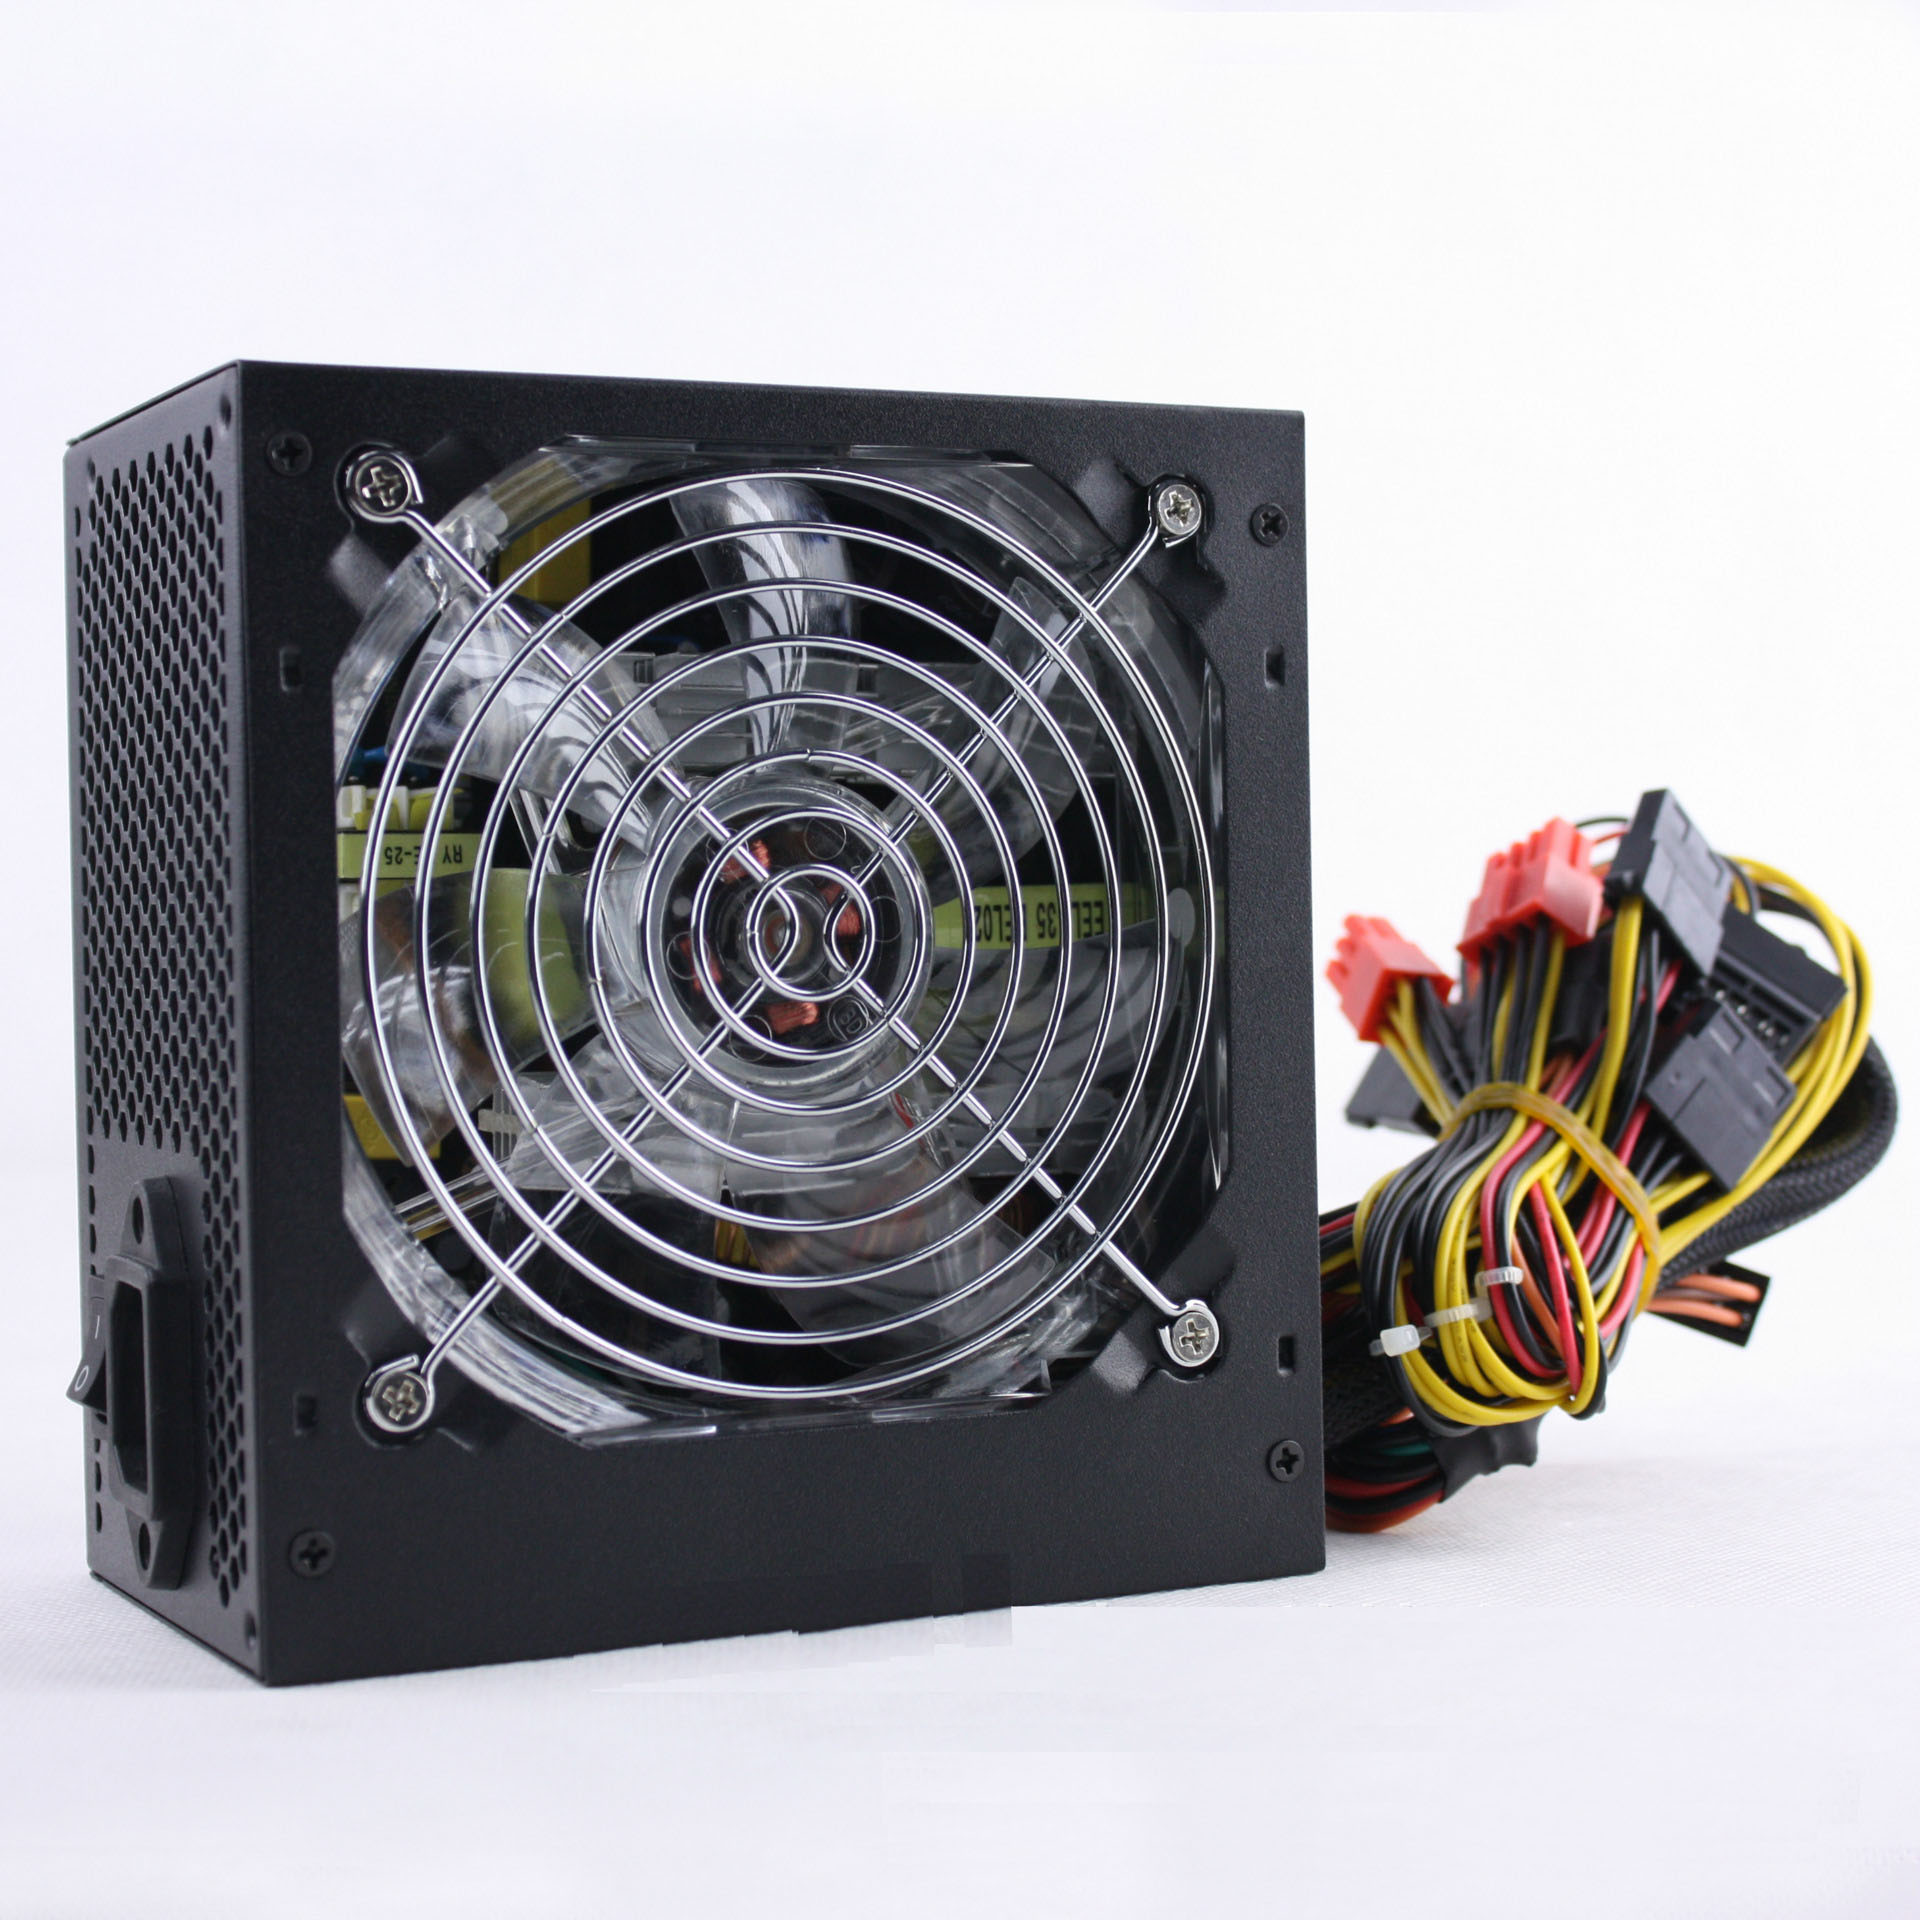 Low price manufacturer 600W 80plus full voltage ATX computer  power supply